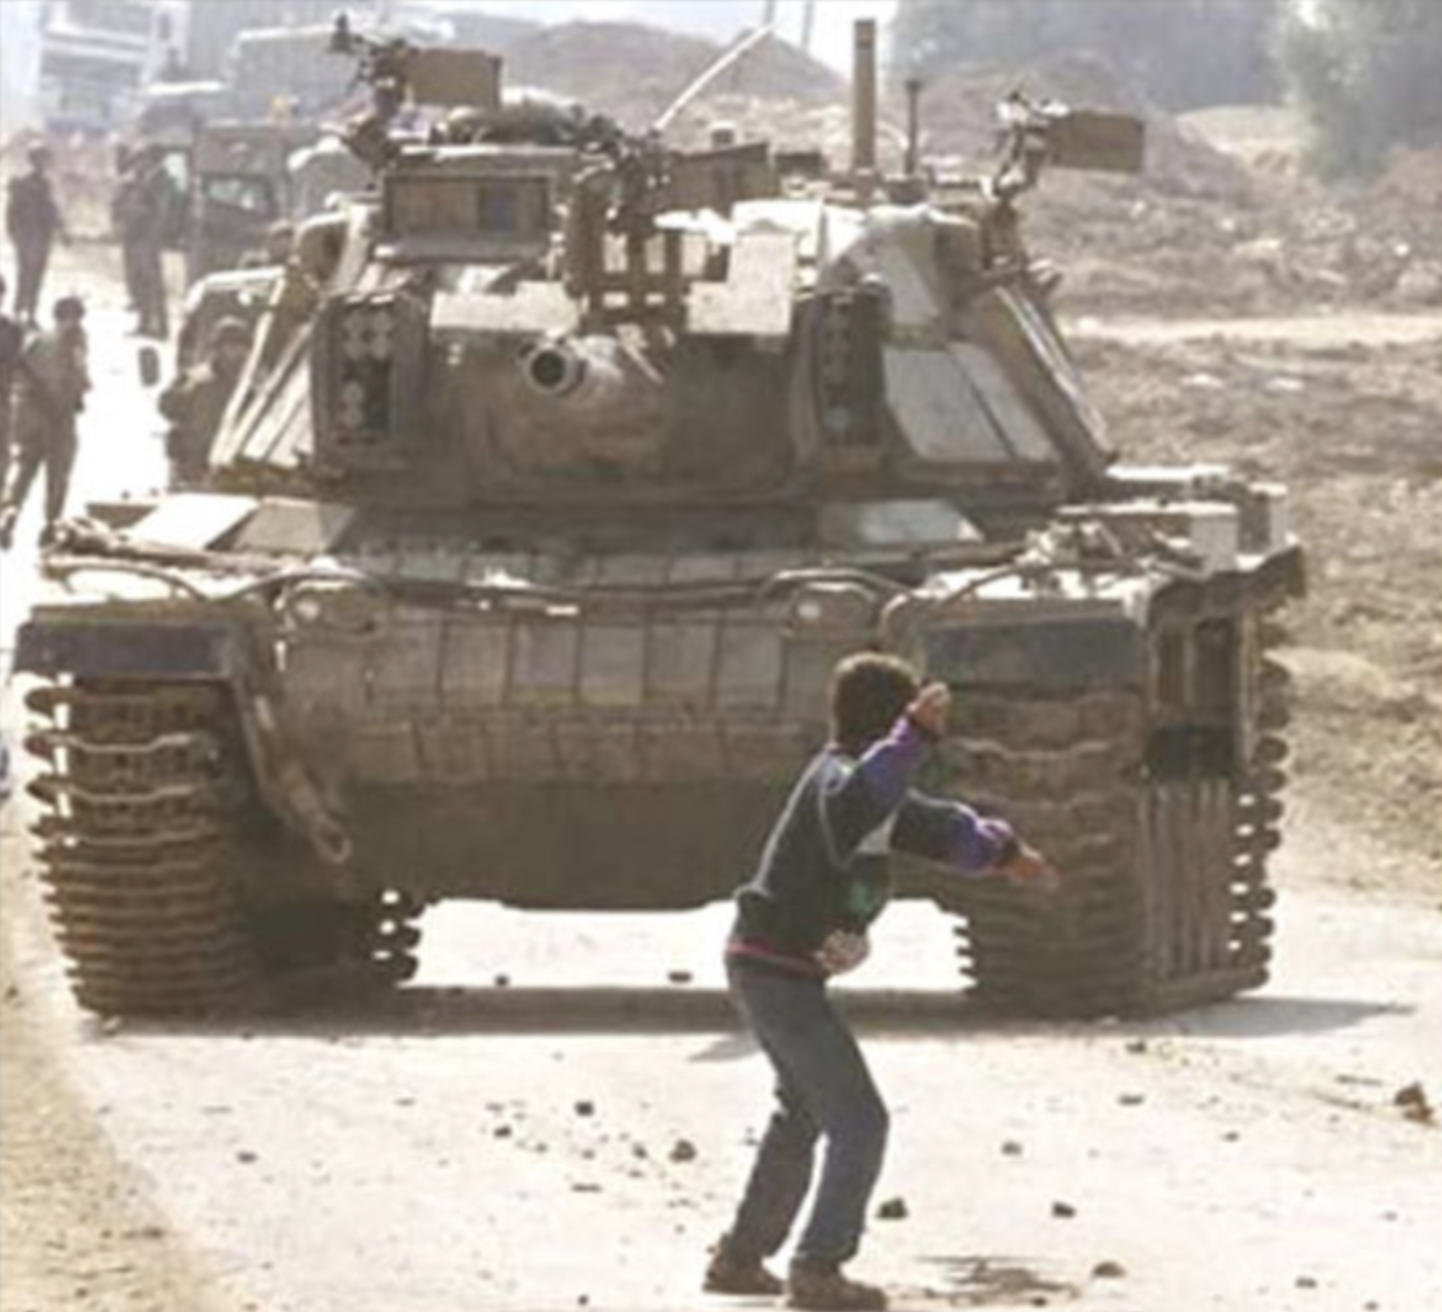 Faris Odeh stood alone in front of a tank on October 29, 2000 with a stone in his hand, when a photojournalist from AP took his picture. Ten days later, he was throwing stones again when he was shot in the neck by Israeli troops. The boy and the image subsequently assumed iconic status as a symbol of opposition to the Israeli occupation. Faris died a few days after the shooting.